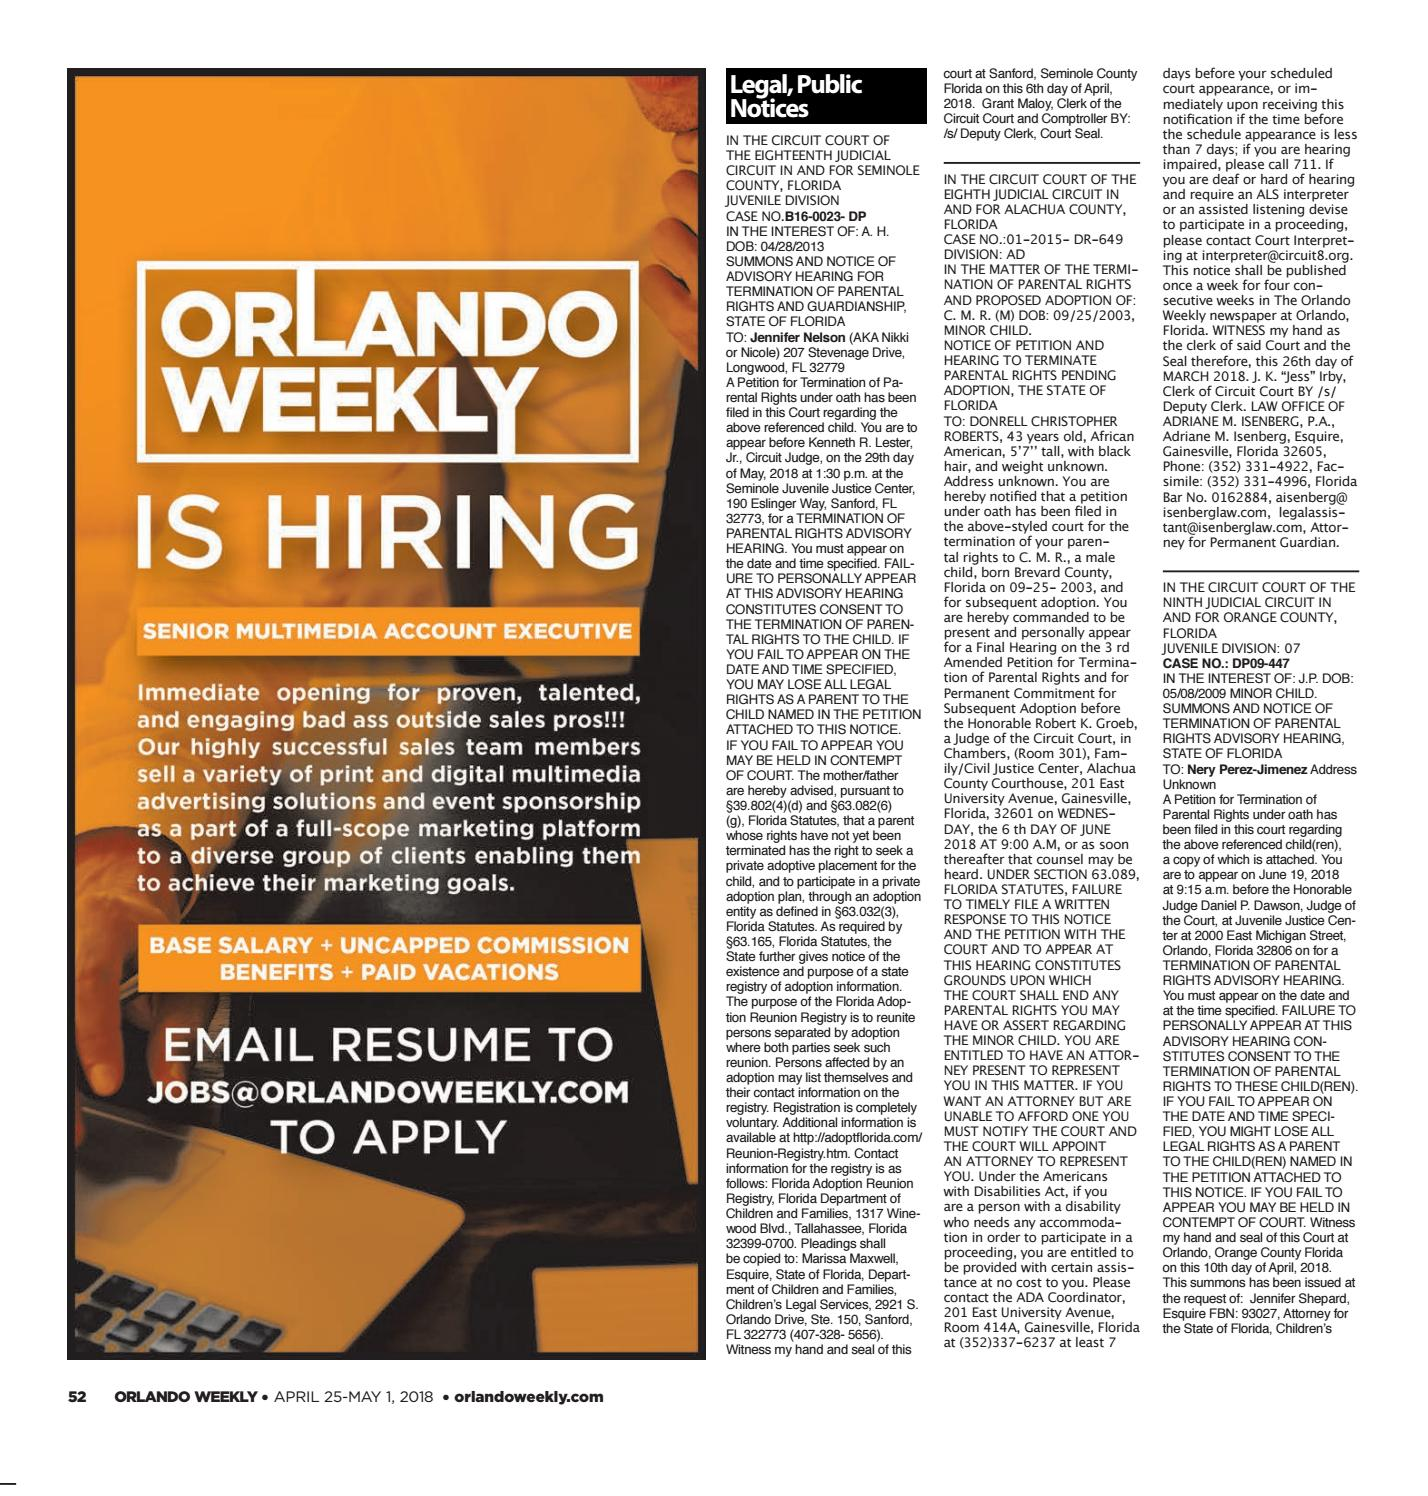 Orlando Weekly April 25, 2018 by Euclid Media Group - issuu